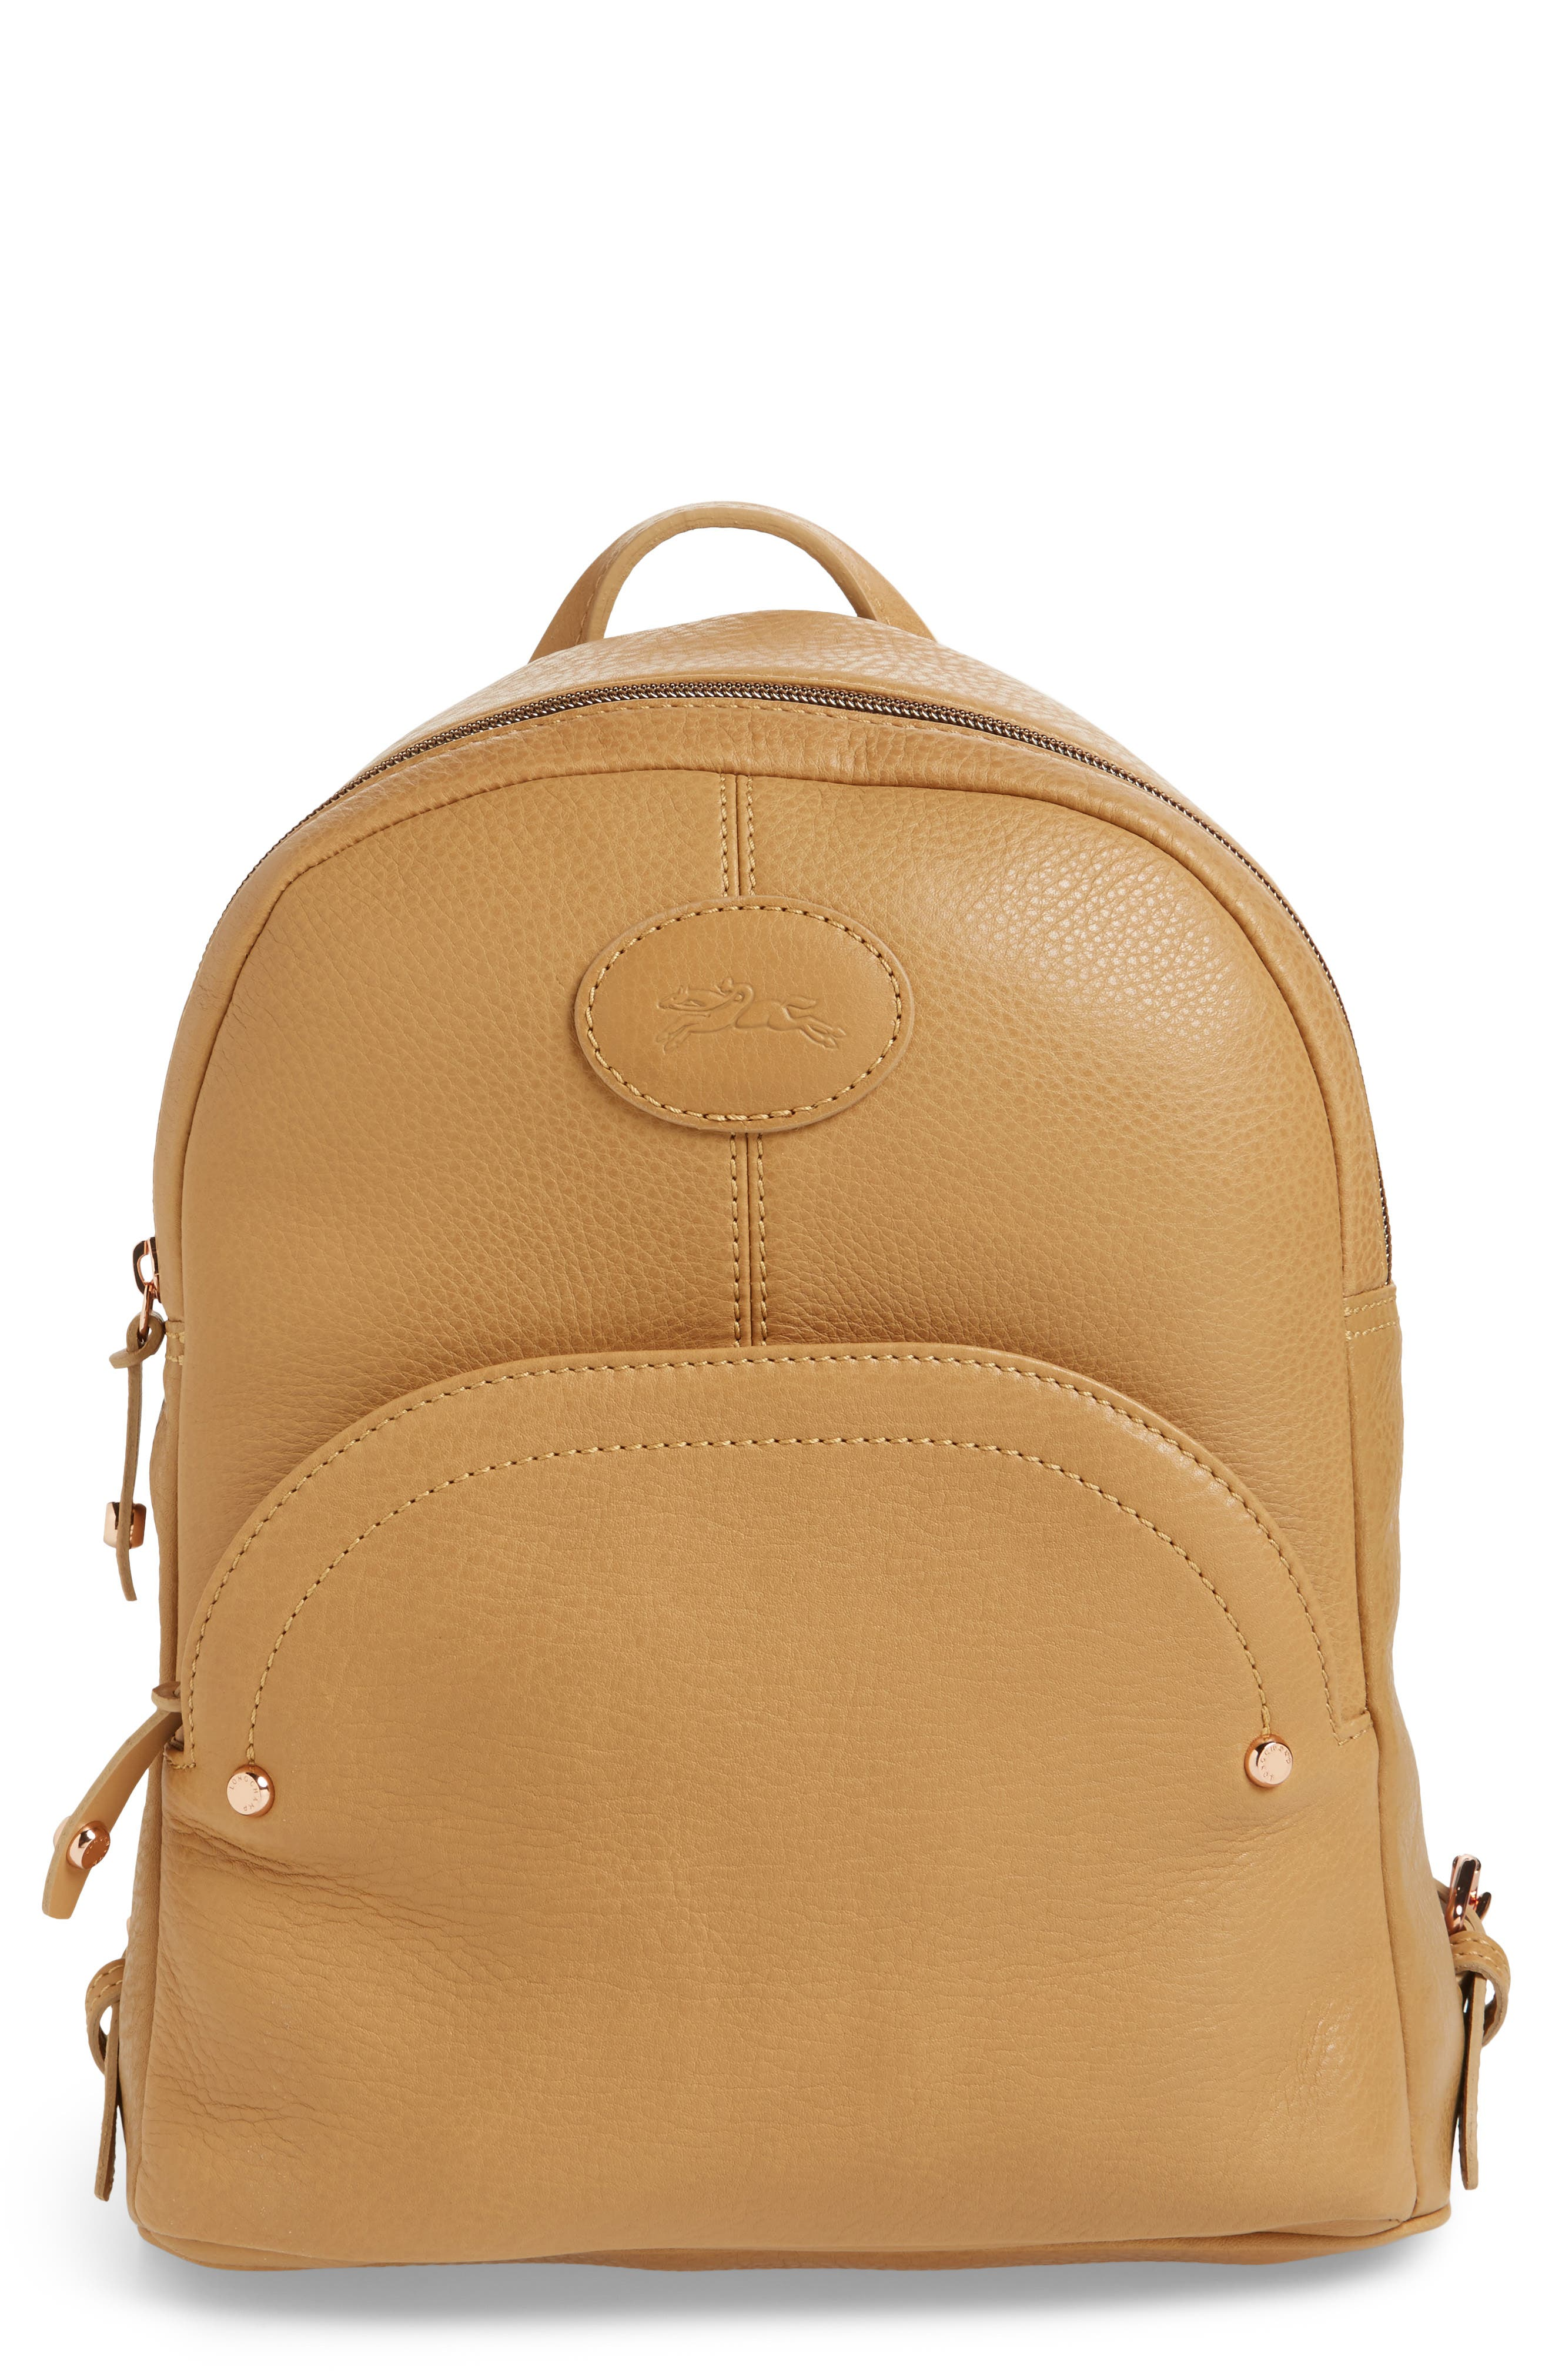 Mystery Leather Backpack,                             Main thumbnail 1, color,                             266